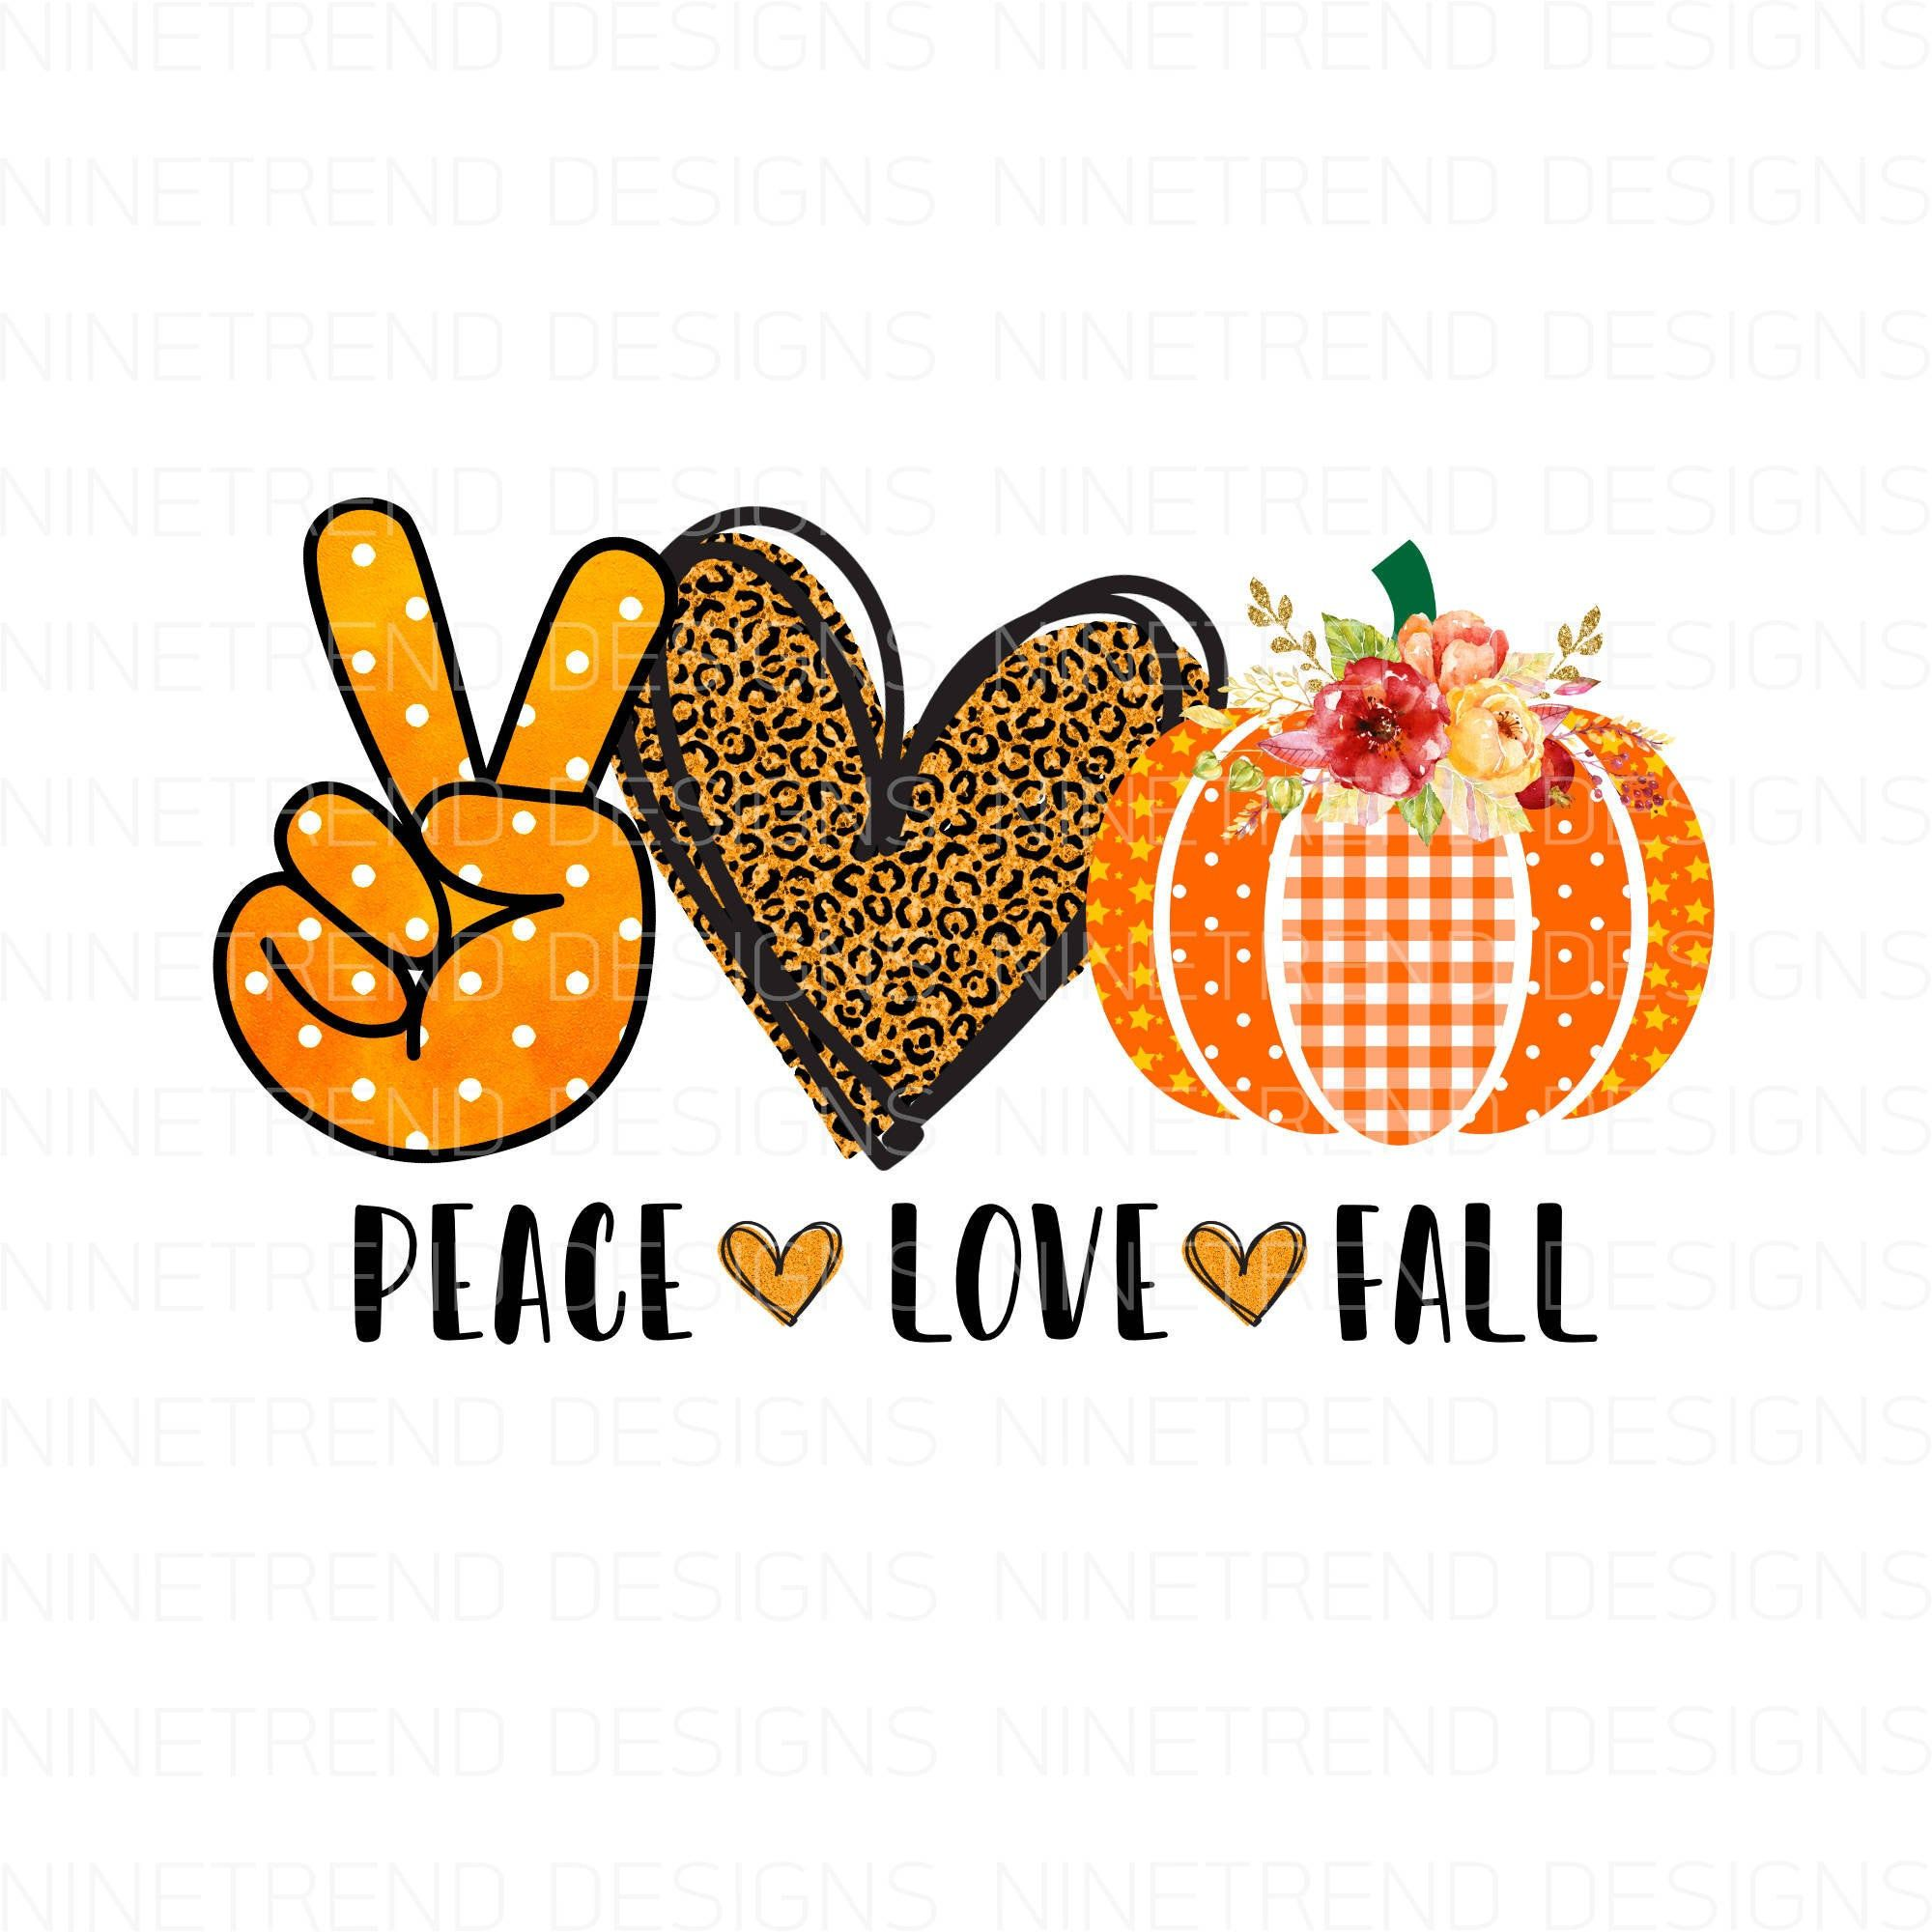 Peace Love Fall pngFall sublimation designs